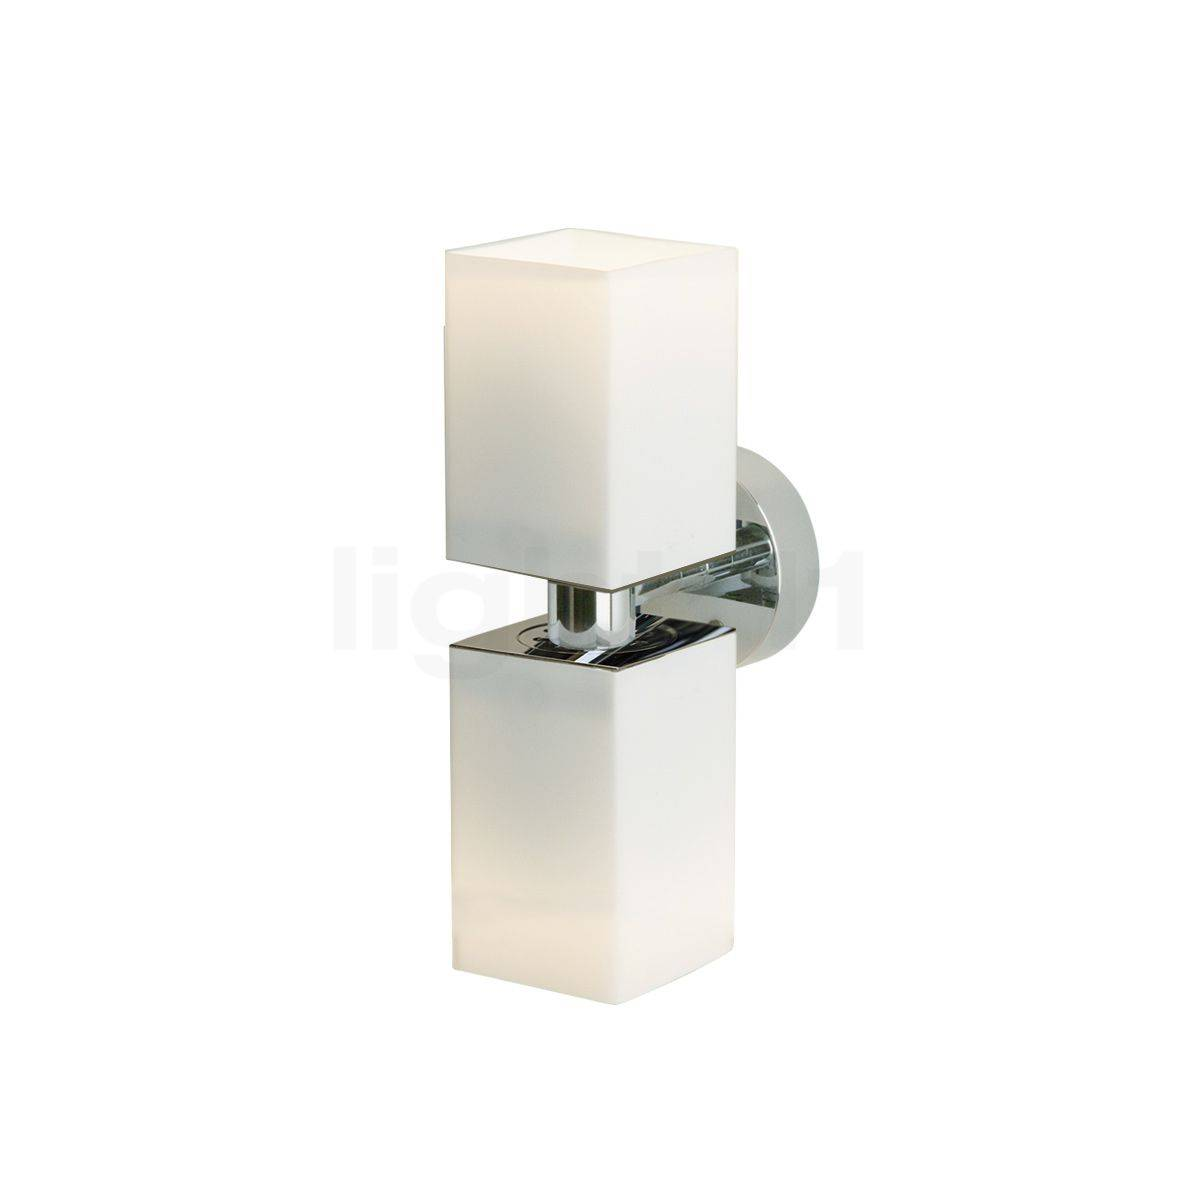 Top Light Cube mini Applique murale 2 foyers, chrome brillant